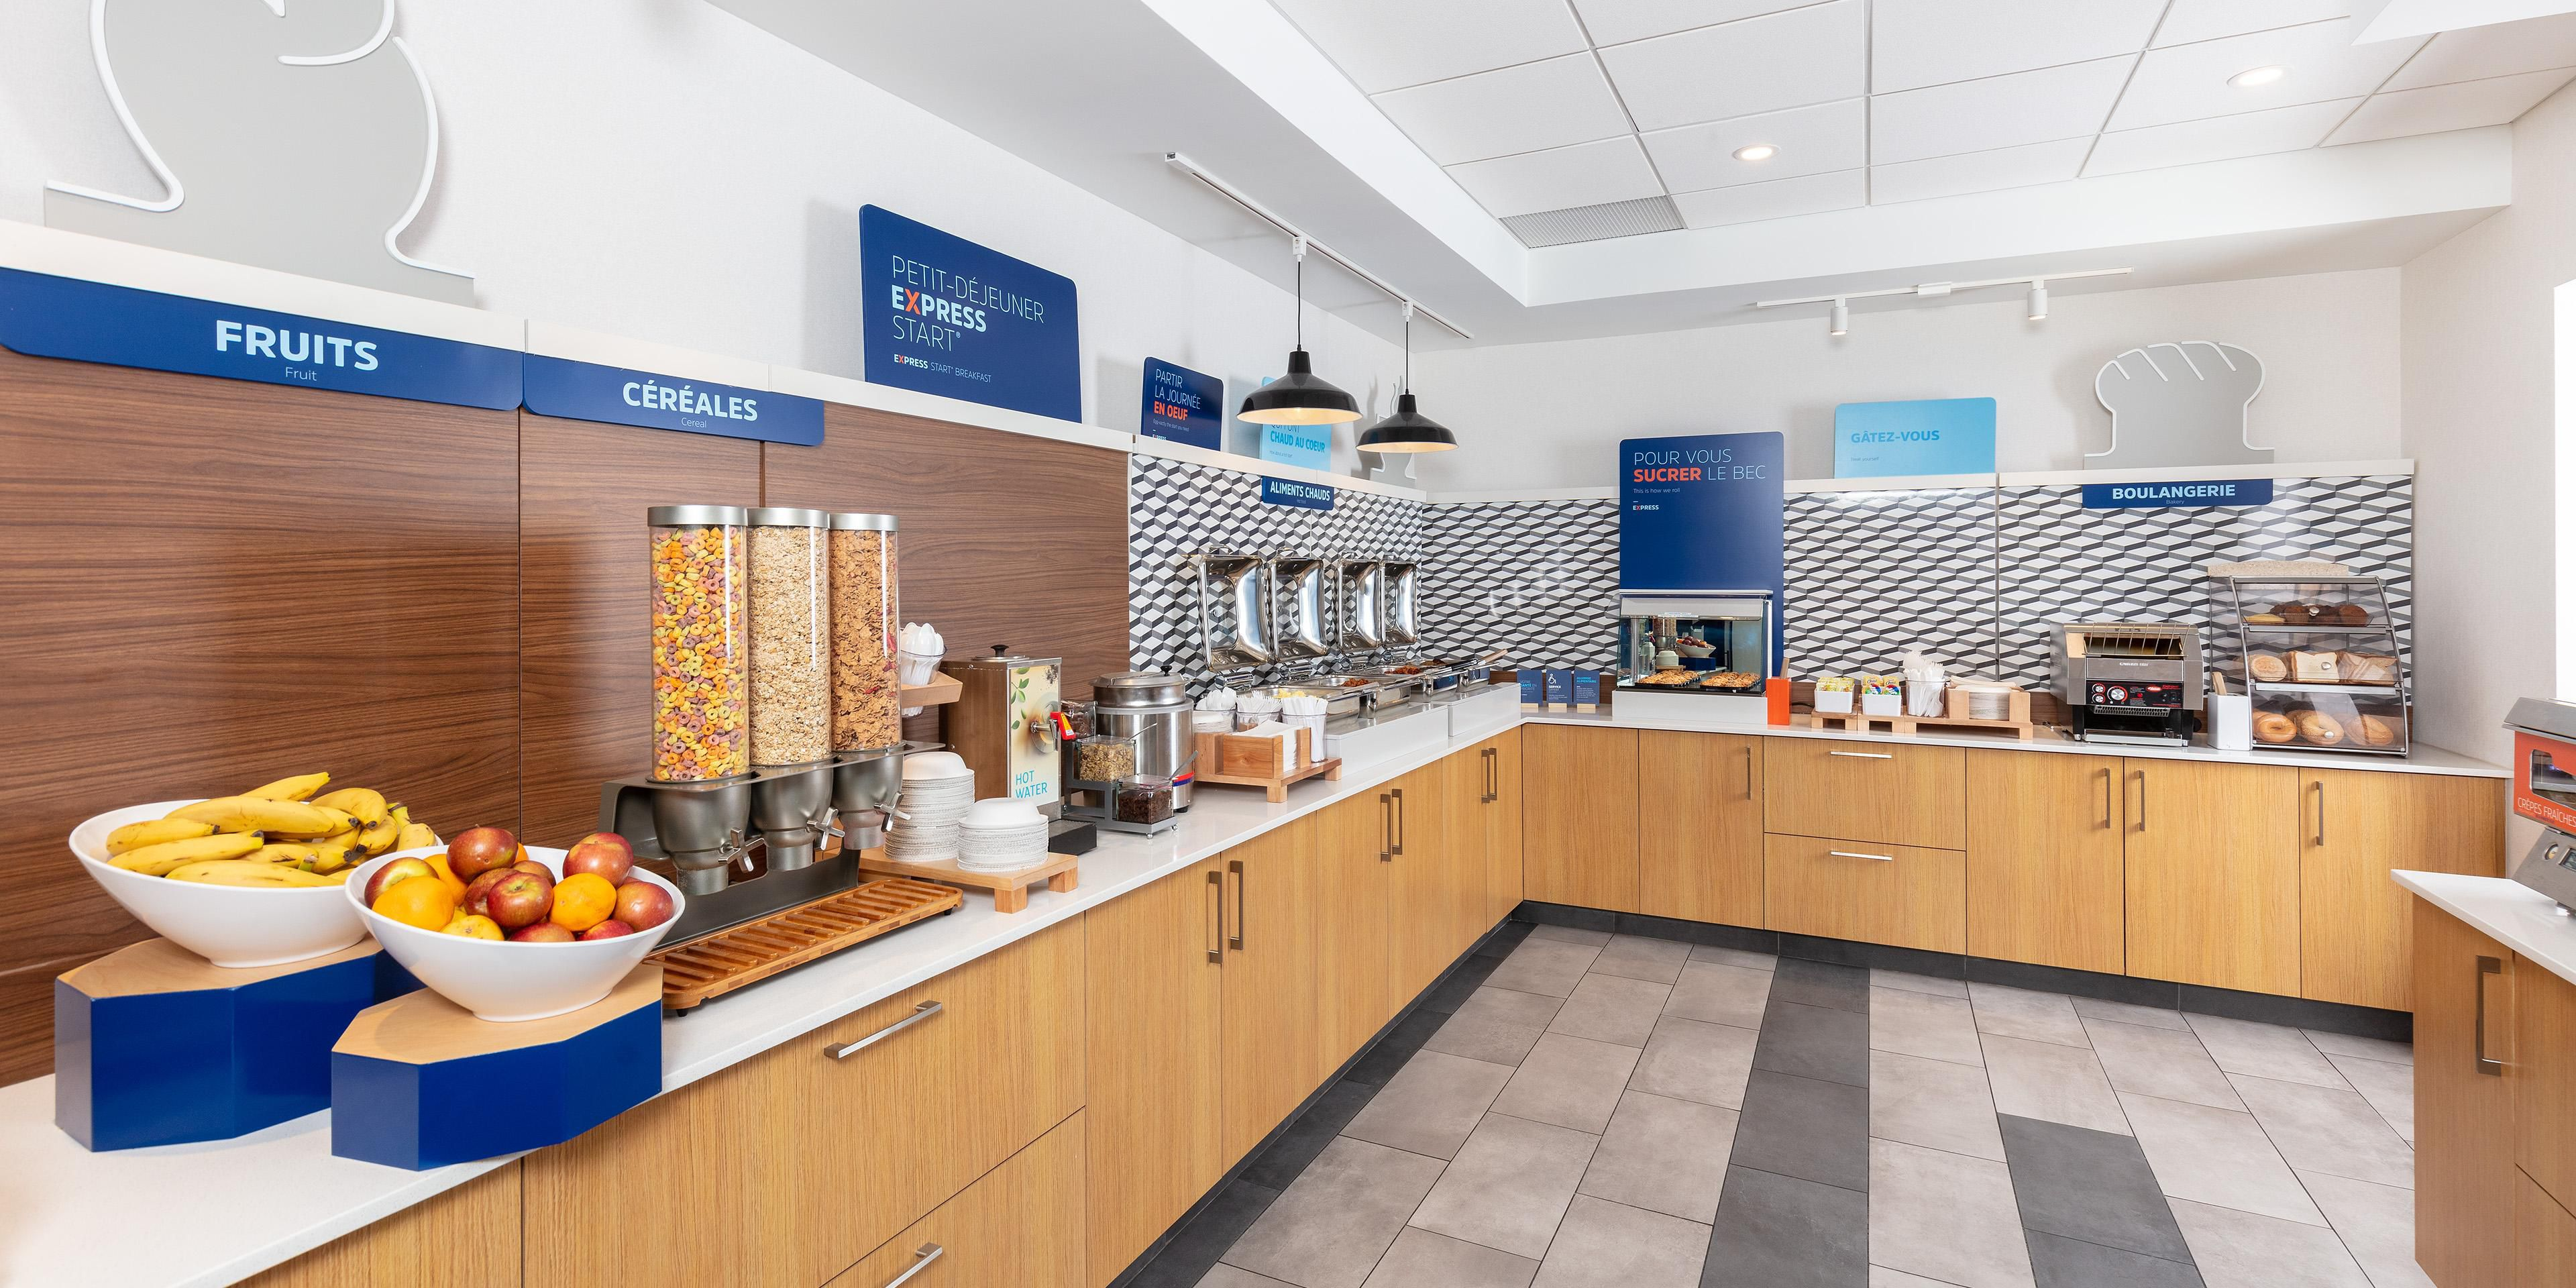 Chambre D'hotes Quebec Holiday Inn Express Quebec City Sainte Foy Hotel In Quebec By Ihg